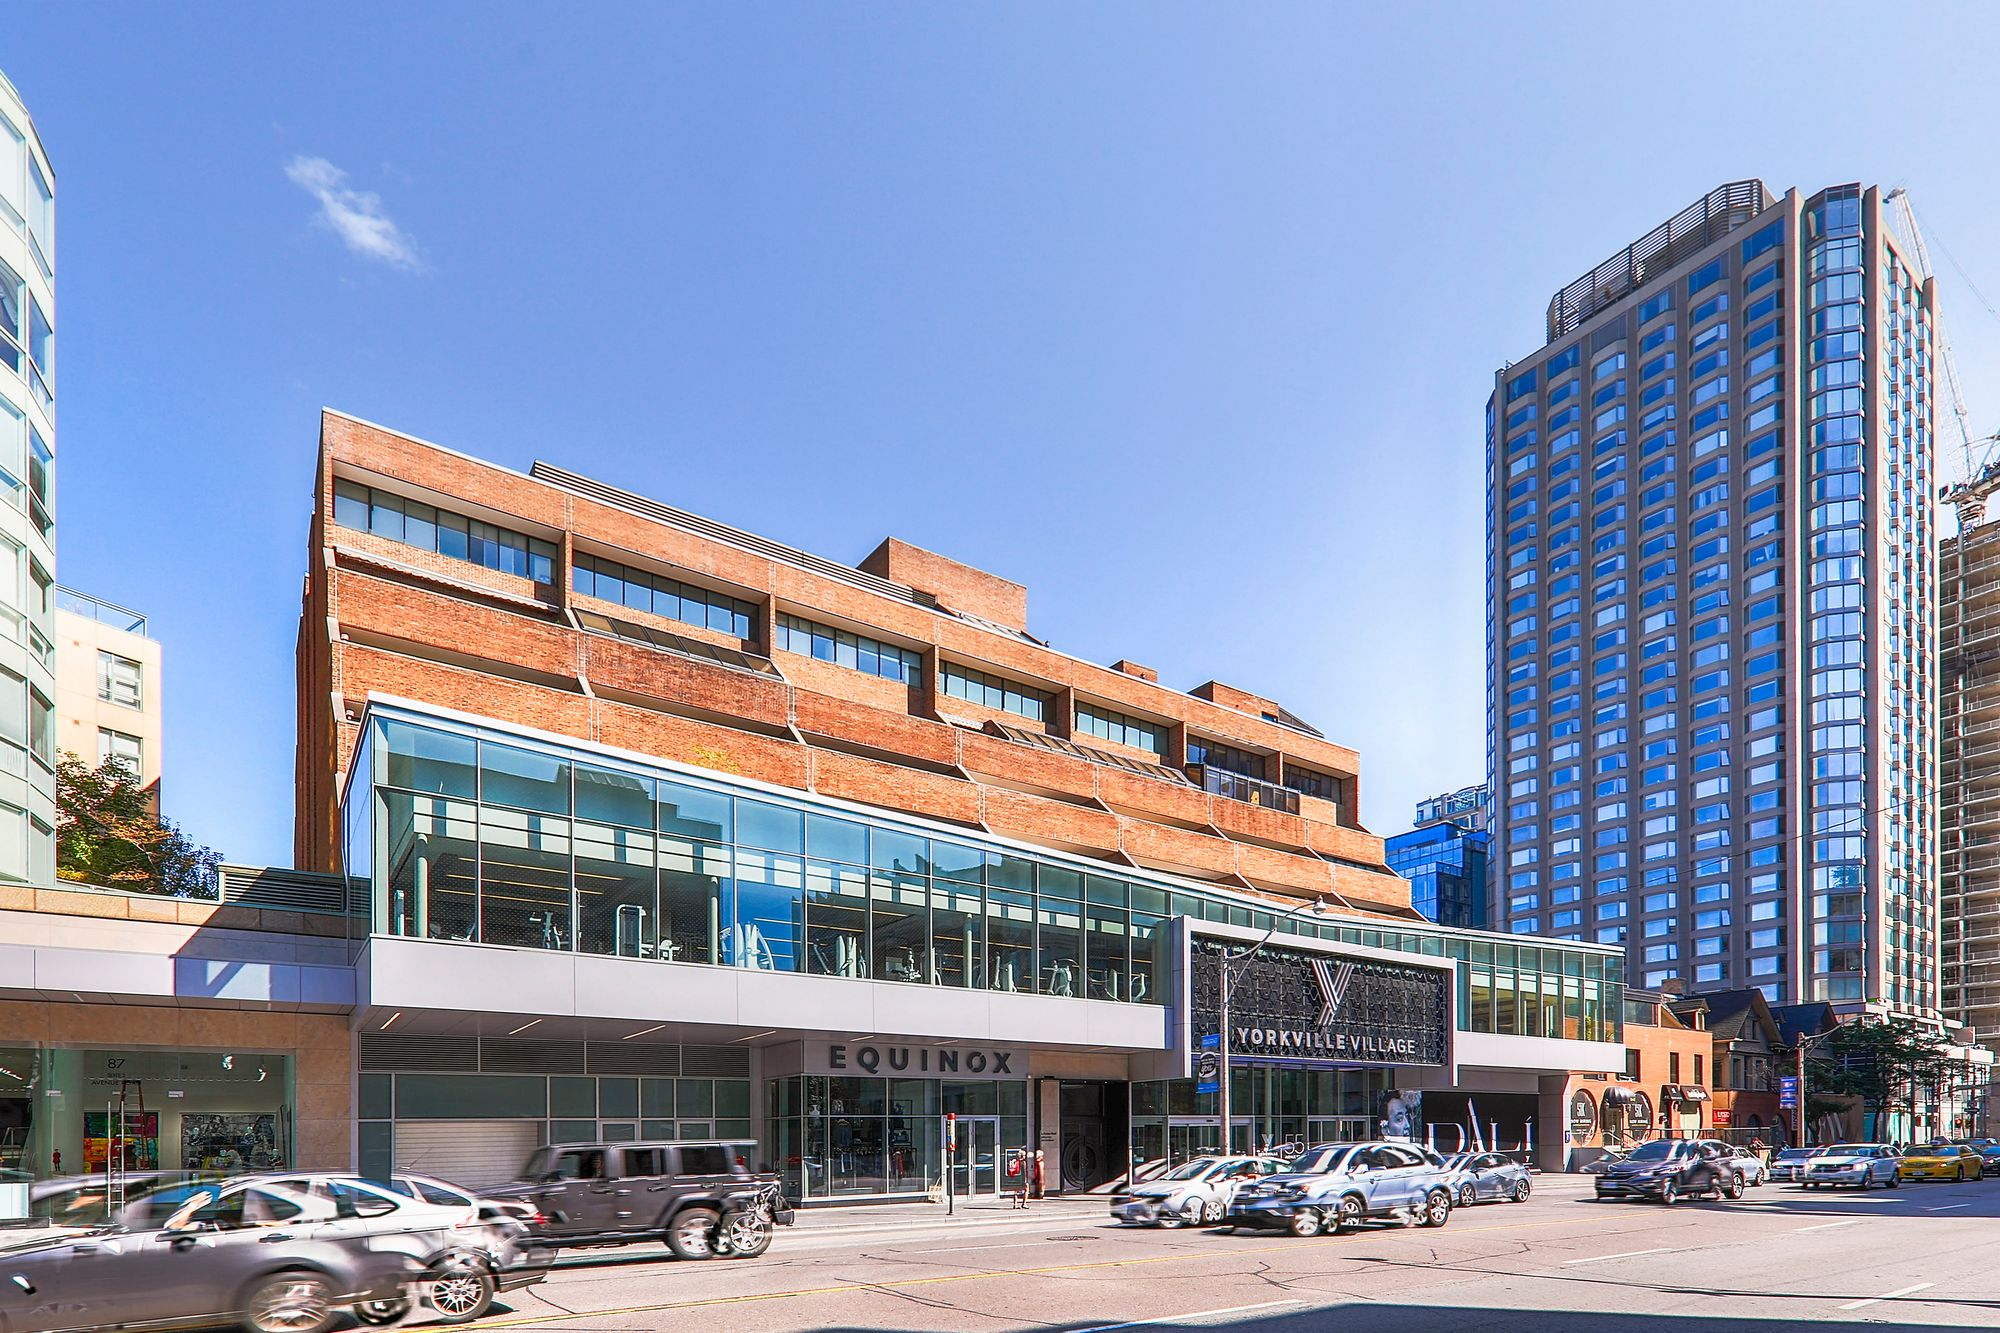 Residences at Hazelton Lanes at 55A Avenue Rd & 18A Hazelton Ave | 1 Condo  for Sale & 1 Unit for Rent | Strata.ca